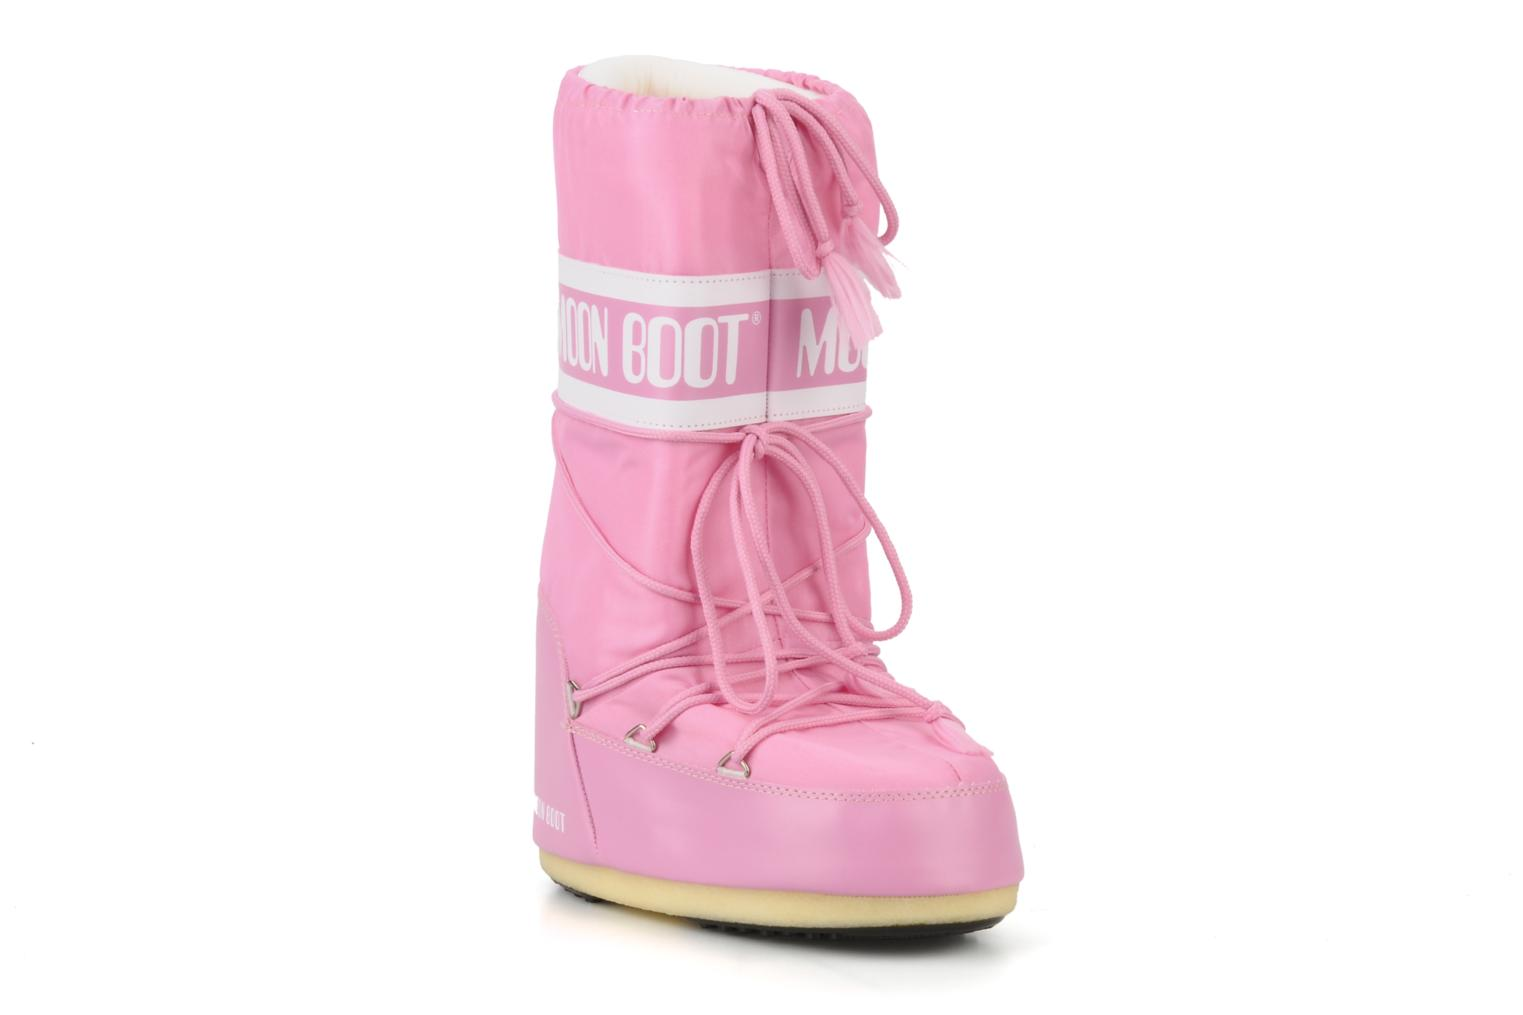 Moon Boot Moon Boot Nylon Sport Shoes In Pink At Sarenza